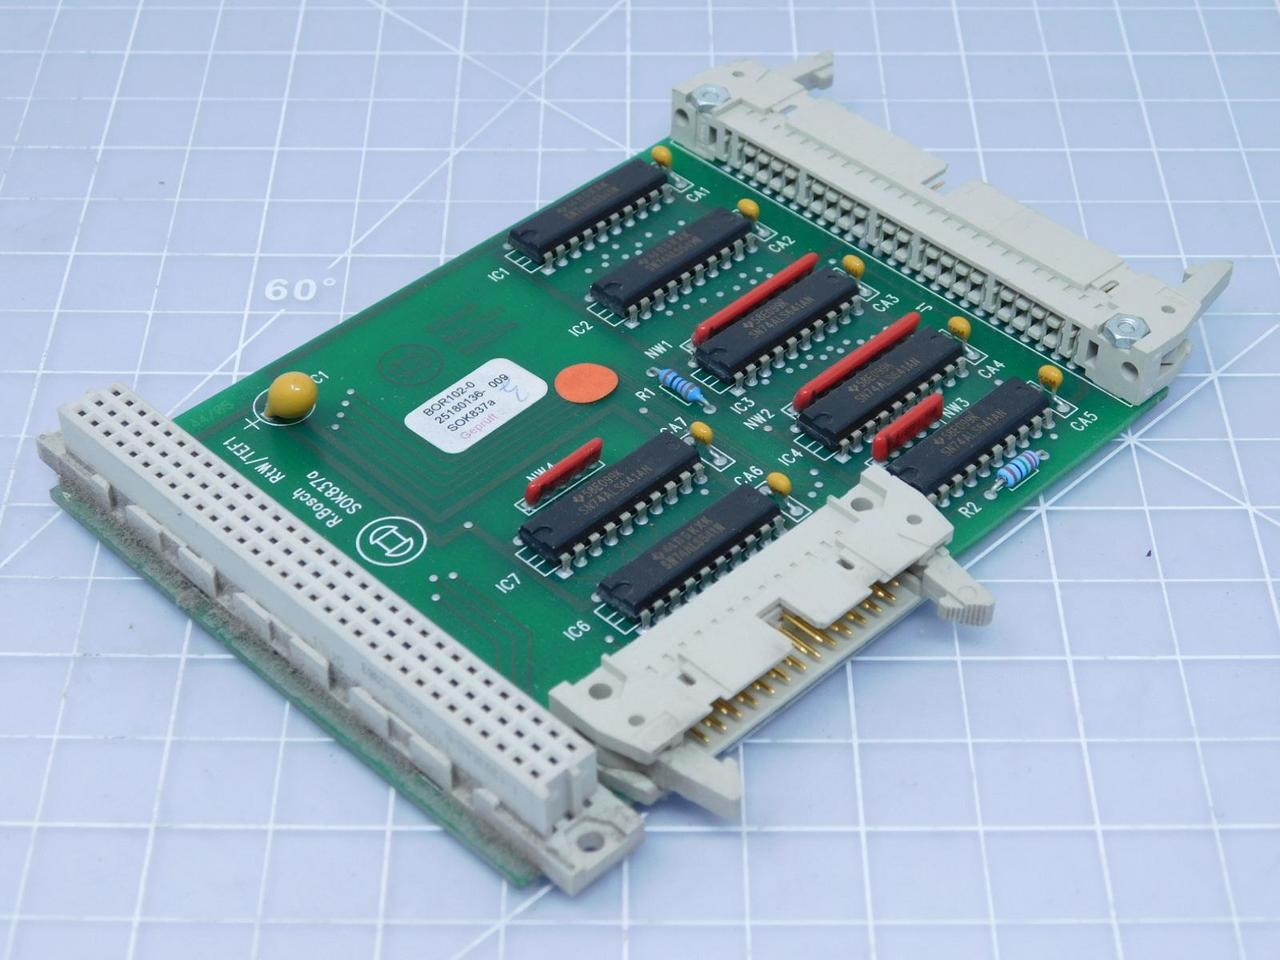 Bosch Bor102 0 Circuit Board Assembly 25180136 009 T121144 Test For Sale